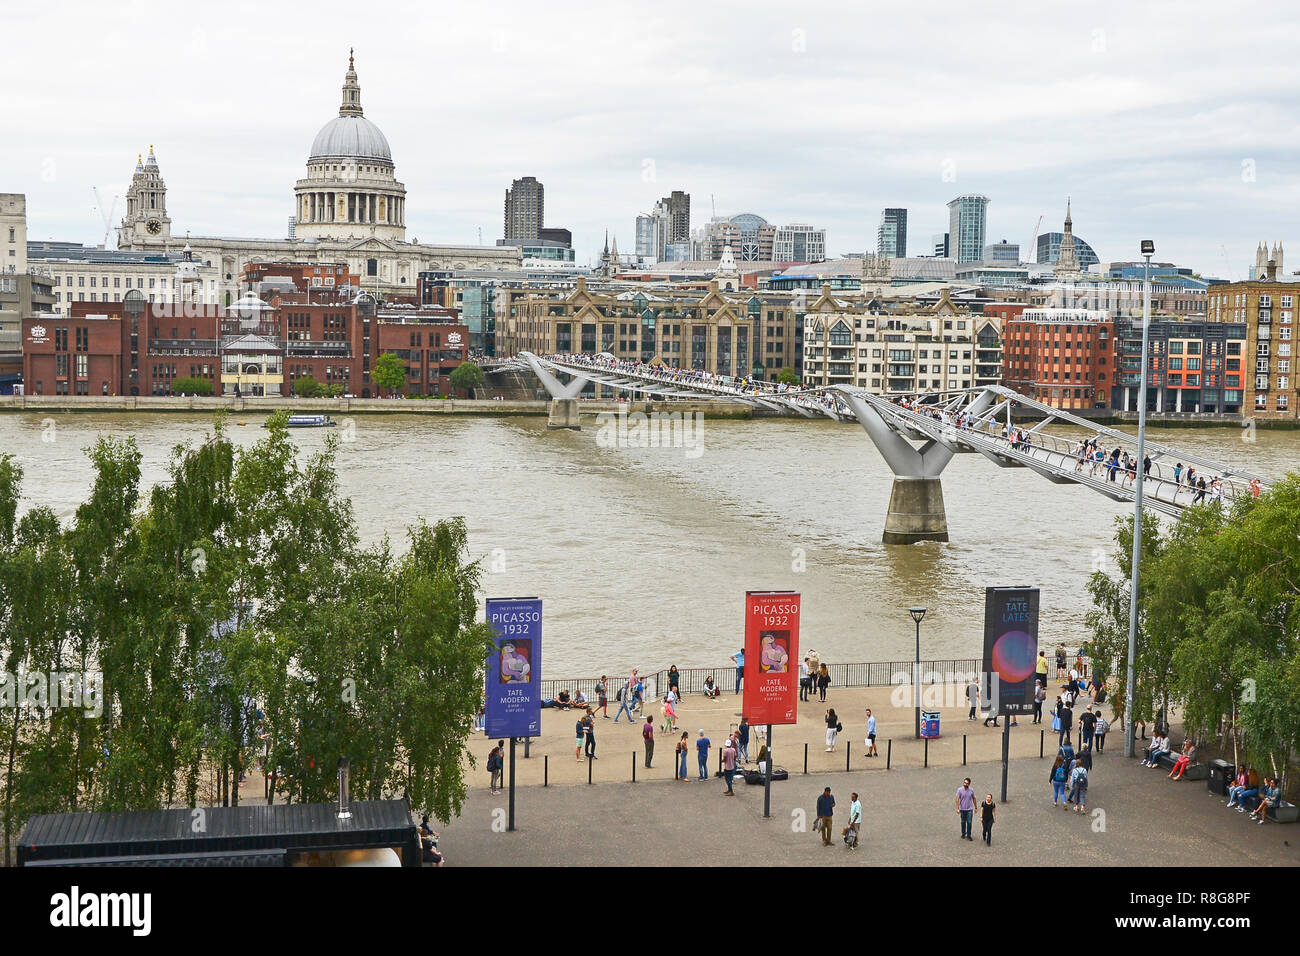 THE MILLENNIUM BRIDGE, THAMES EMBANKMENT, LONDON. AUGUST 2018. The Millennium Footbridge asuspension bridge over the River Thames with St Pauls Stock Photo